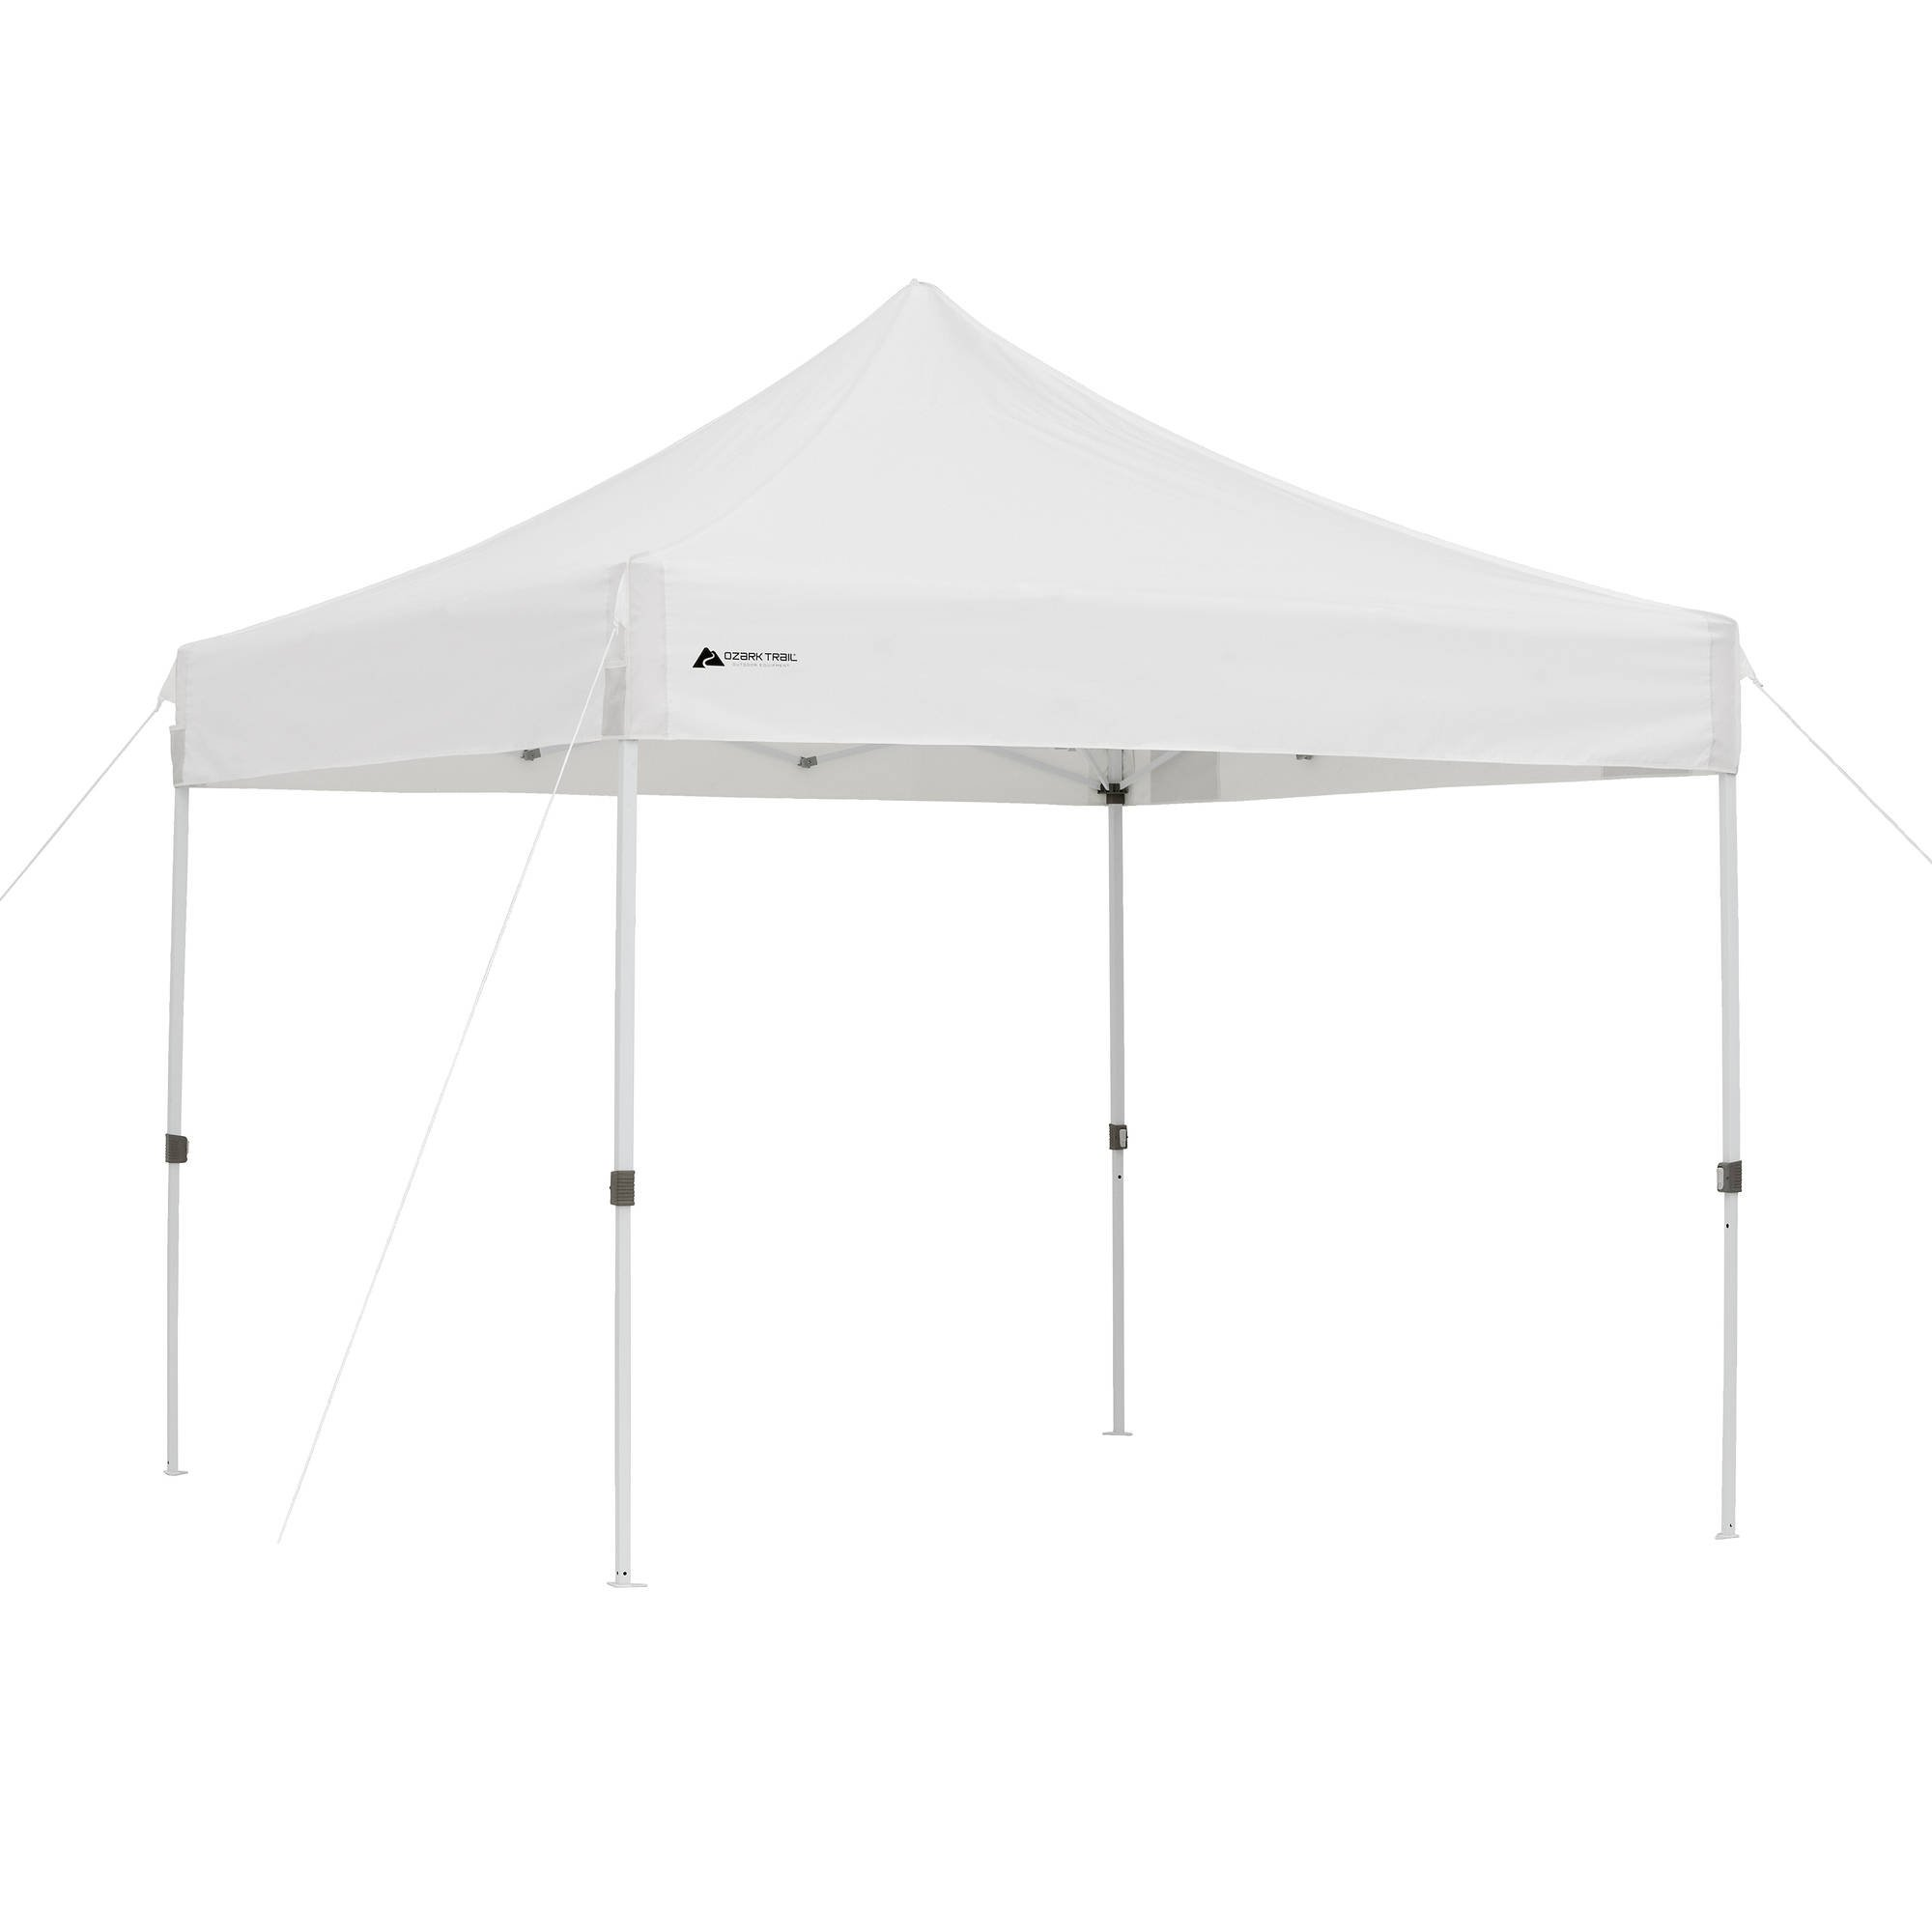 Ozark Trail Instant Set Up 10' x 10', Fast Set Up!, 1-Touch Instant Canopy, White, Provides 50+ UV Protection and 100 square feet of Shade, Heavy-Duty, Long Lasting, and Durable!